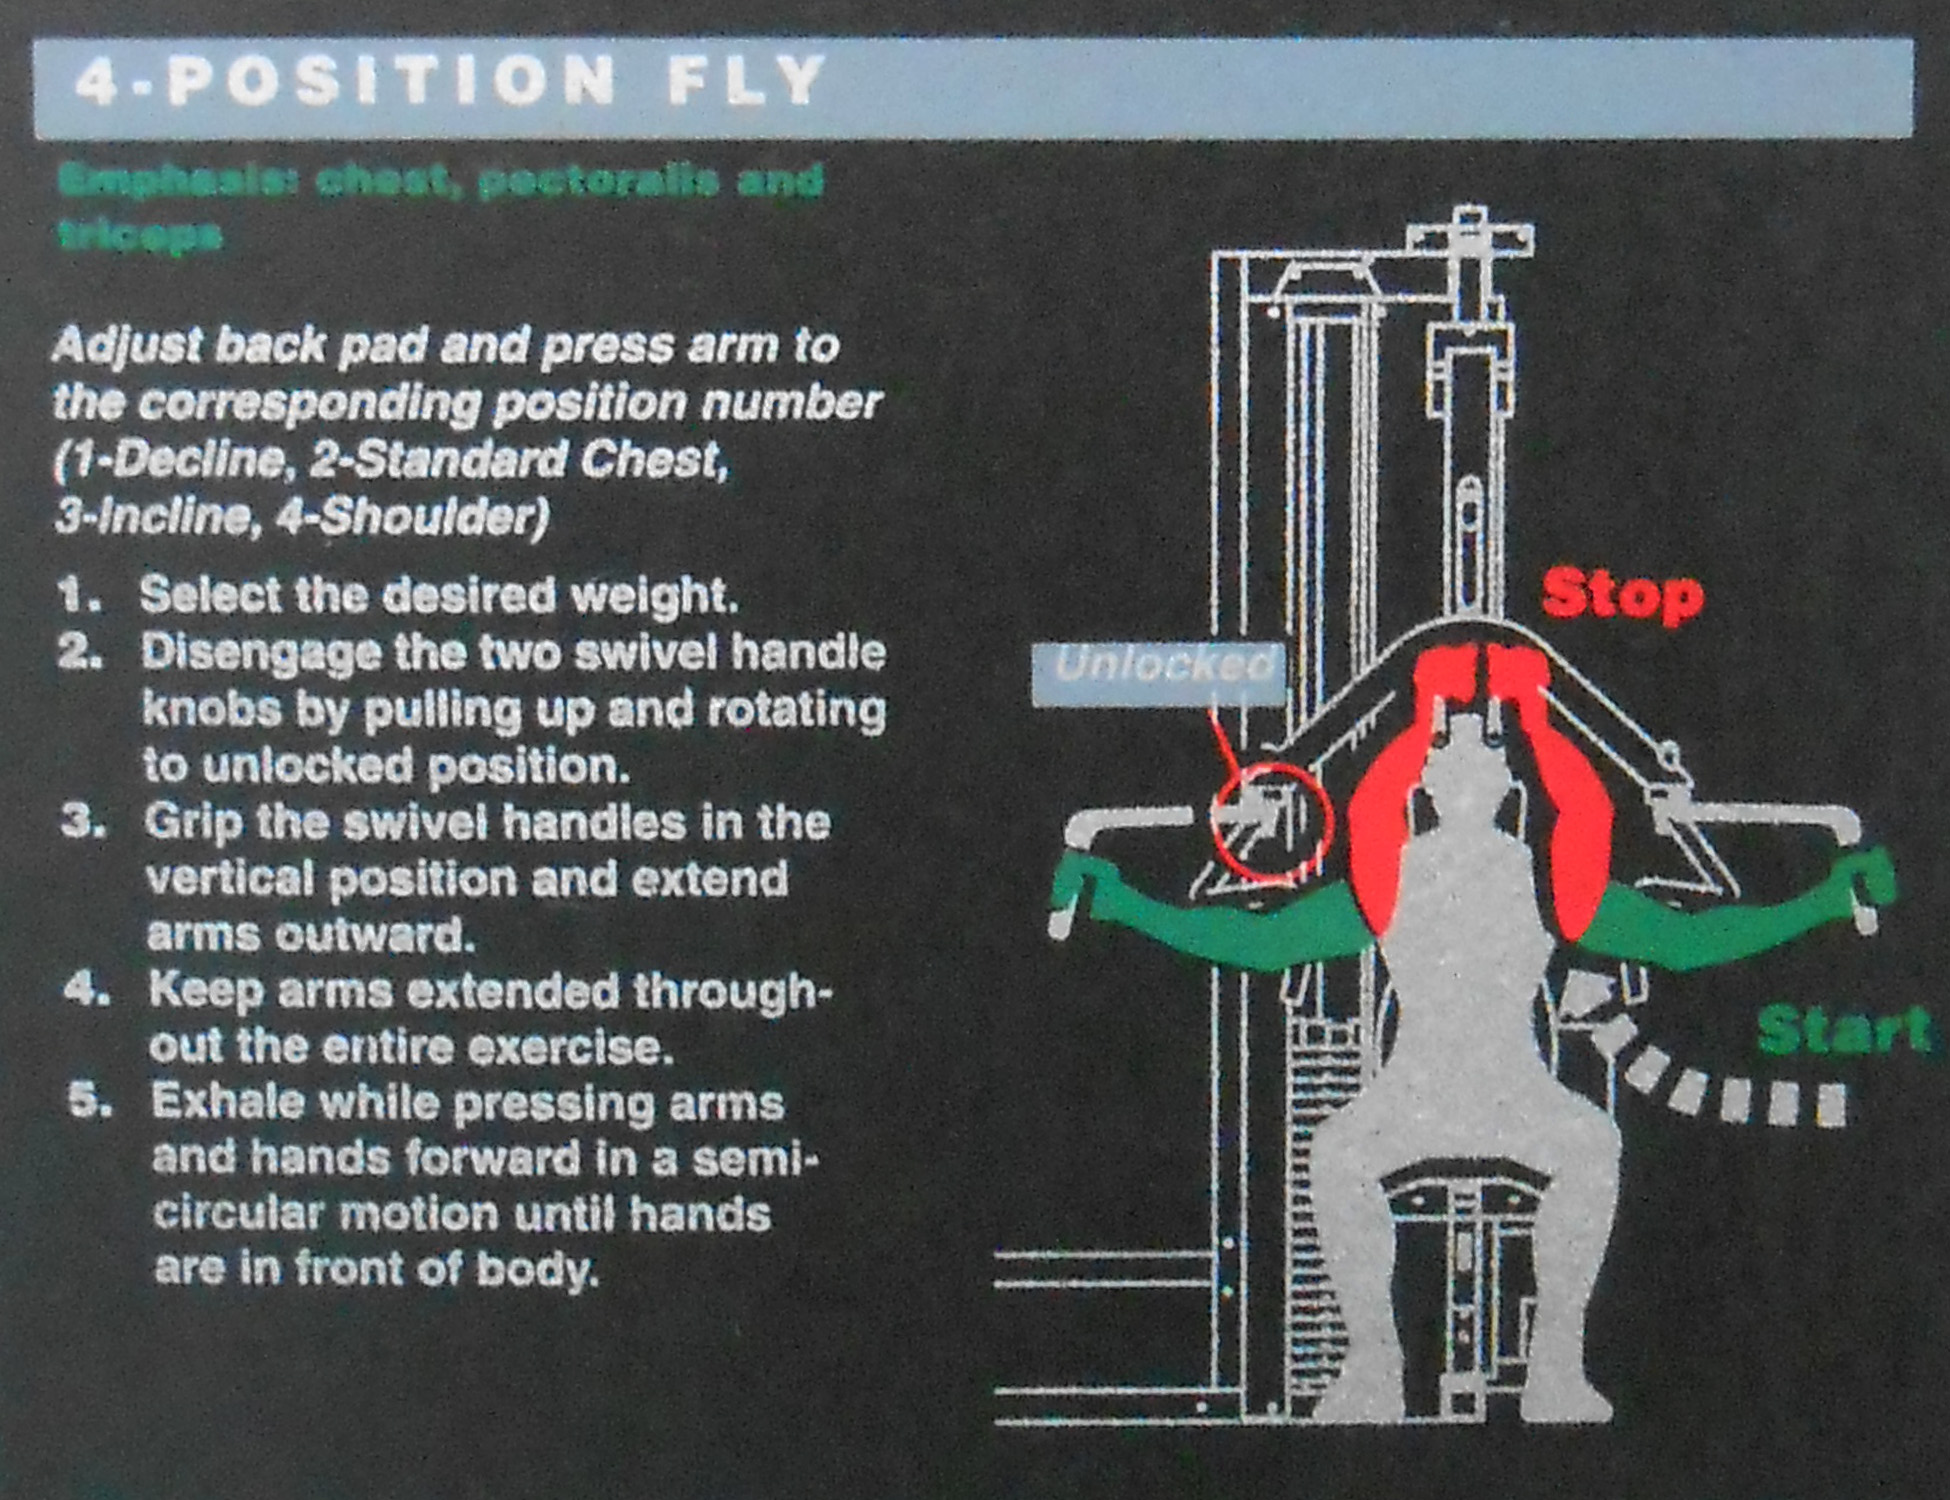 4-Position Fly